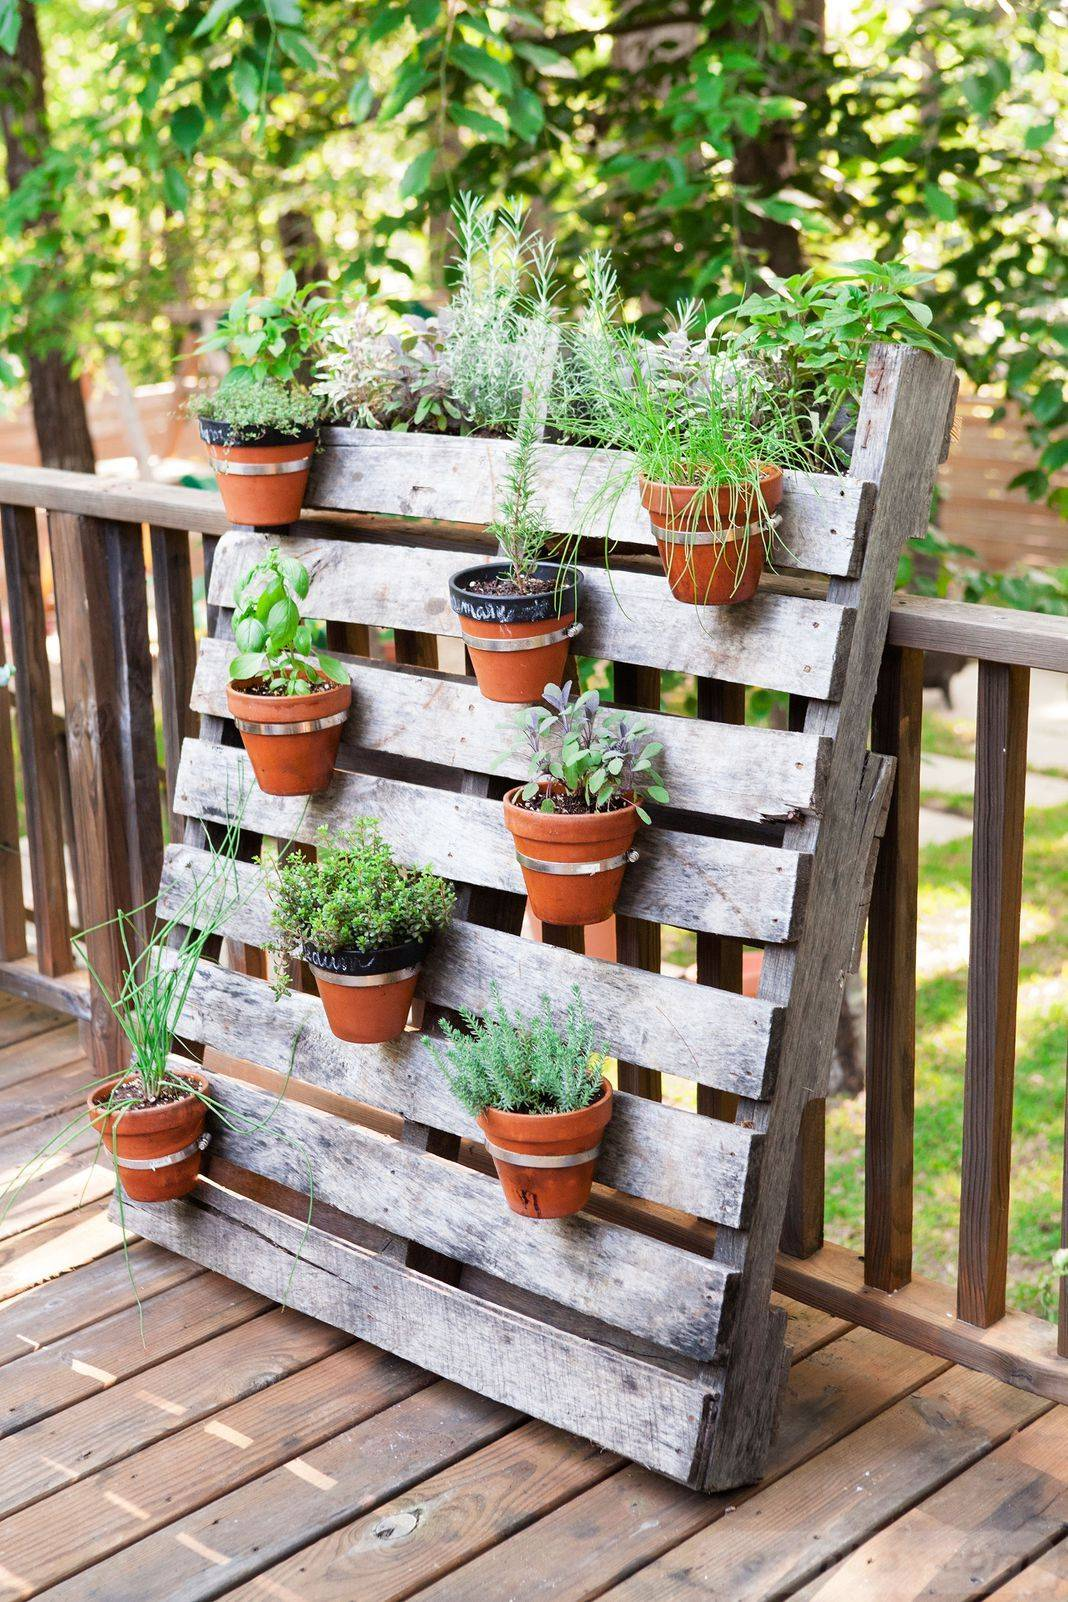 diy easy garden ideas-341429215500968041